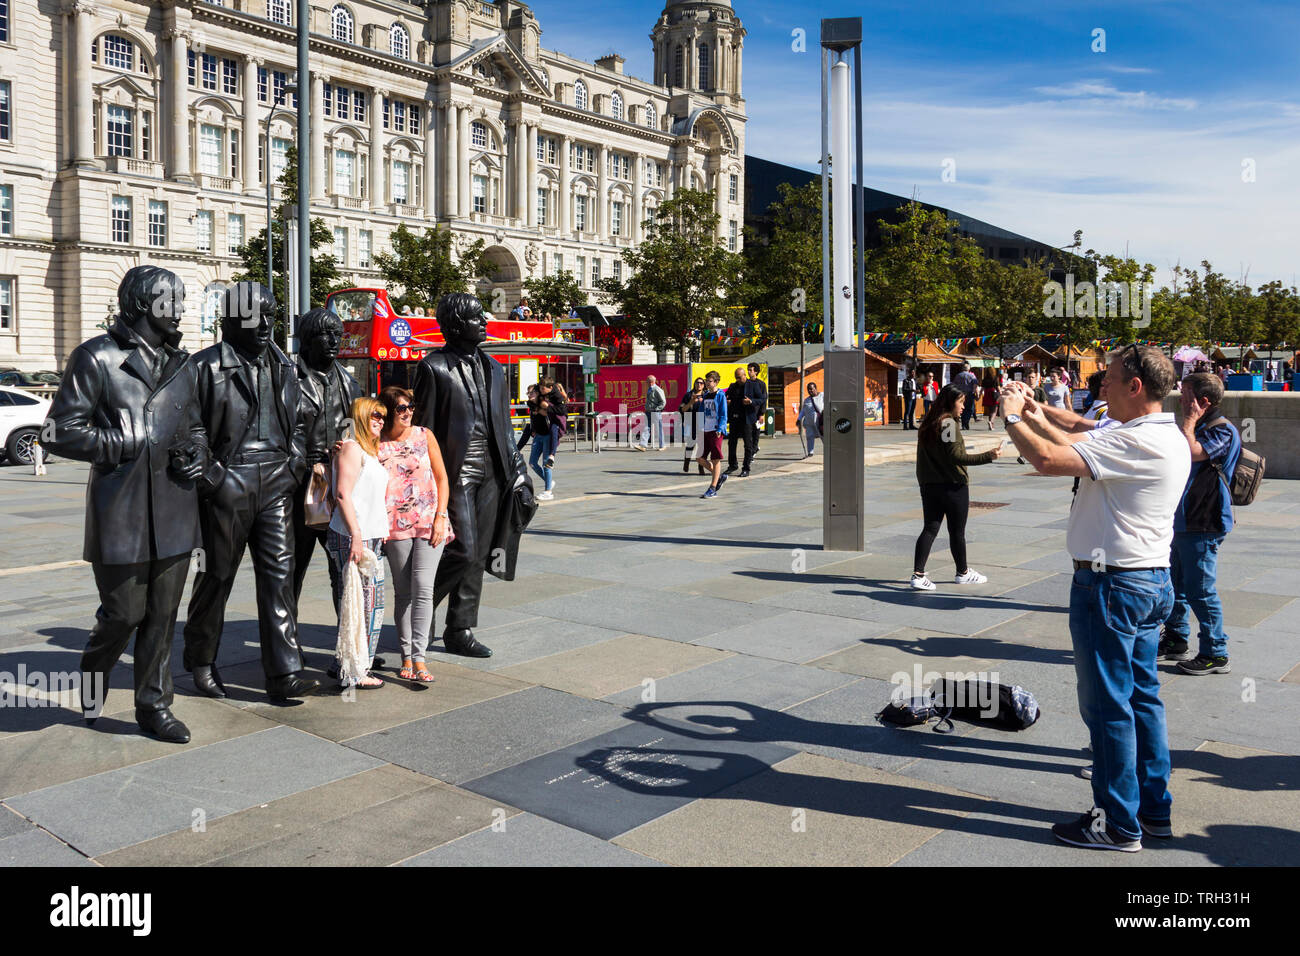 Two women posing for a photograph in front of the  Beatles statue on Liverpool's Pier Head. The statue was unveiled in December 2015. - Stock Image